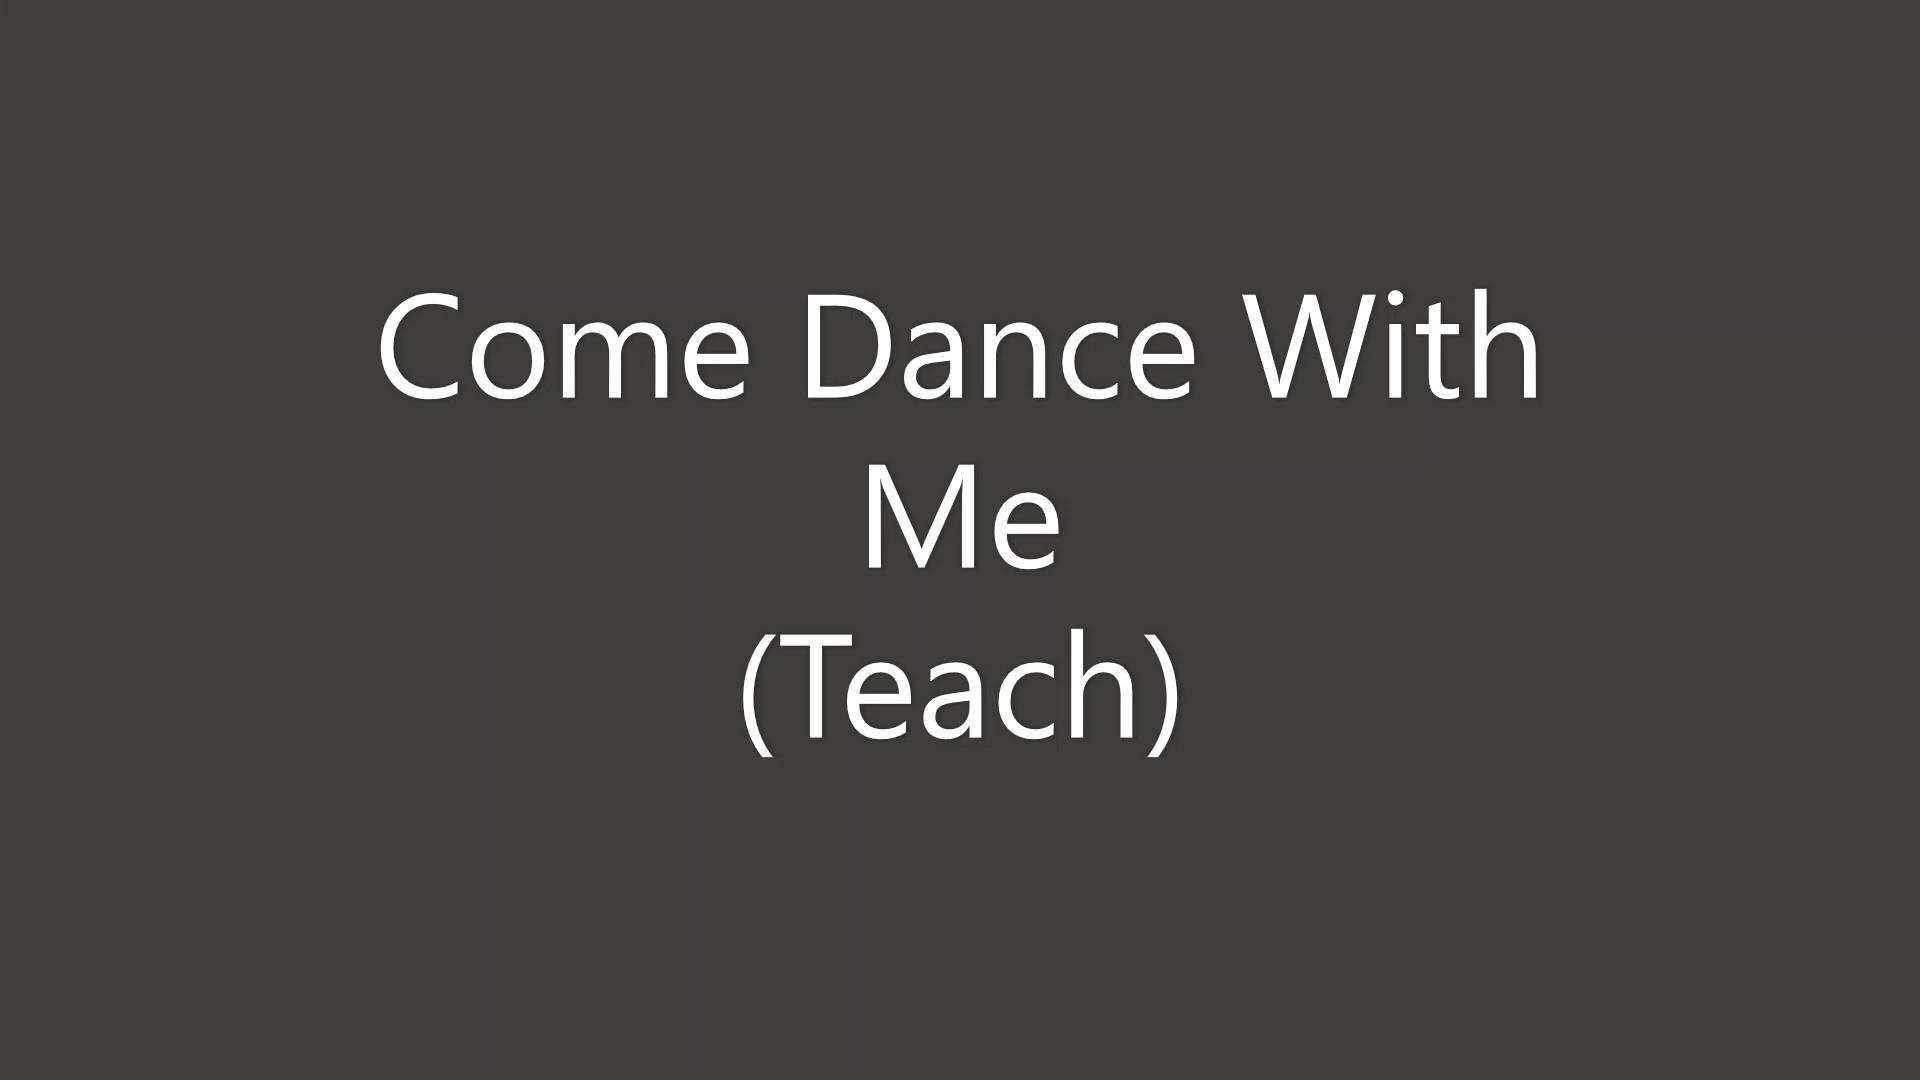 Come Dance With Me Teach